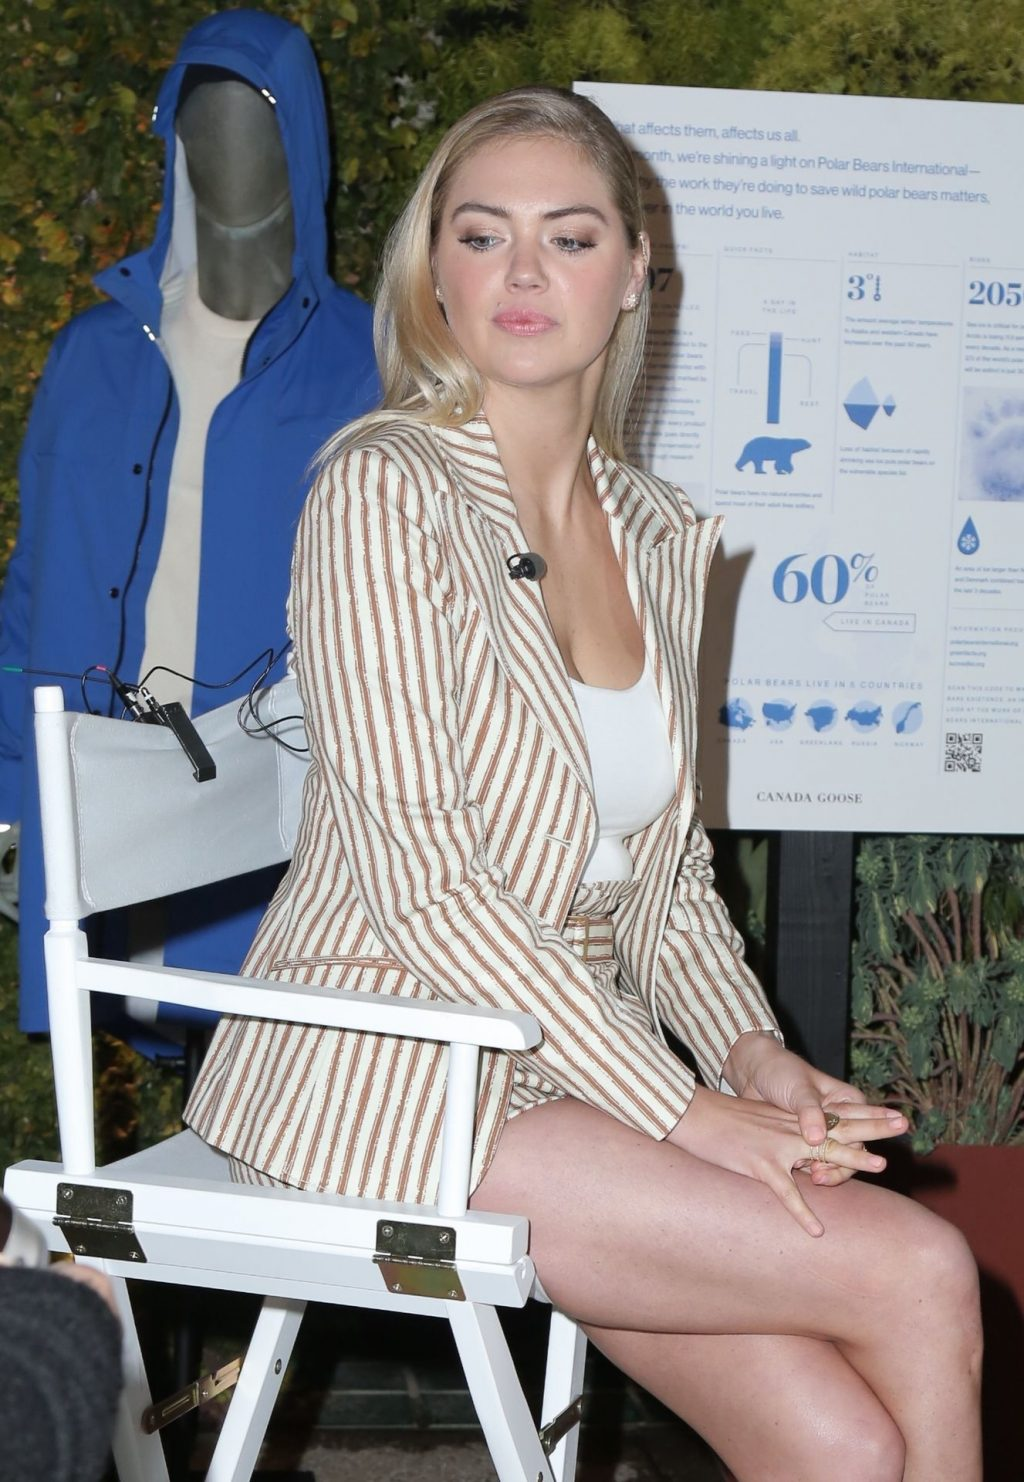 Kate Upton Sexy The Fappening Blog 3 1024x1482 - Kate Upton Attends Canada Goose And Vogue Cocktails & Conversations (104 Photos)